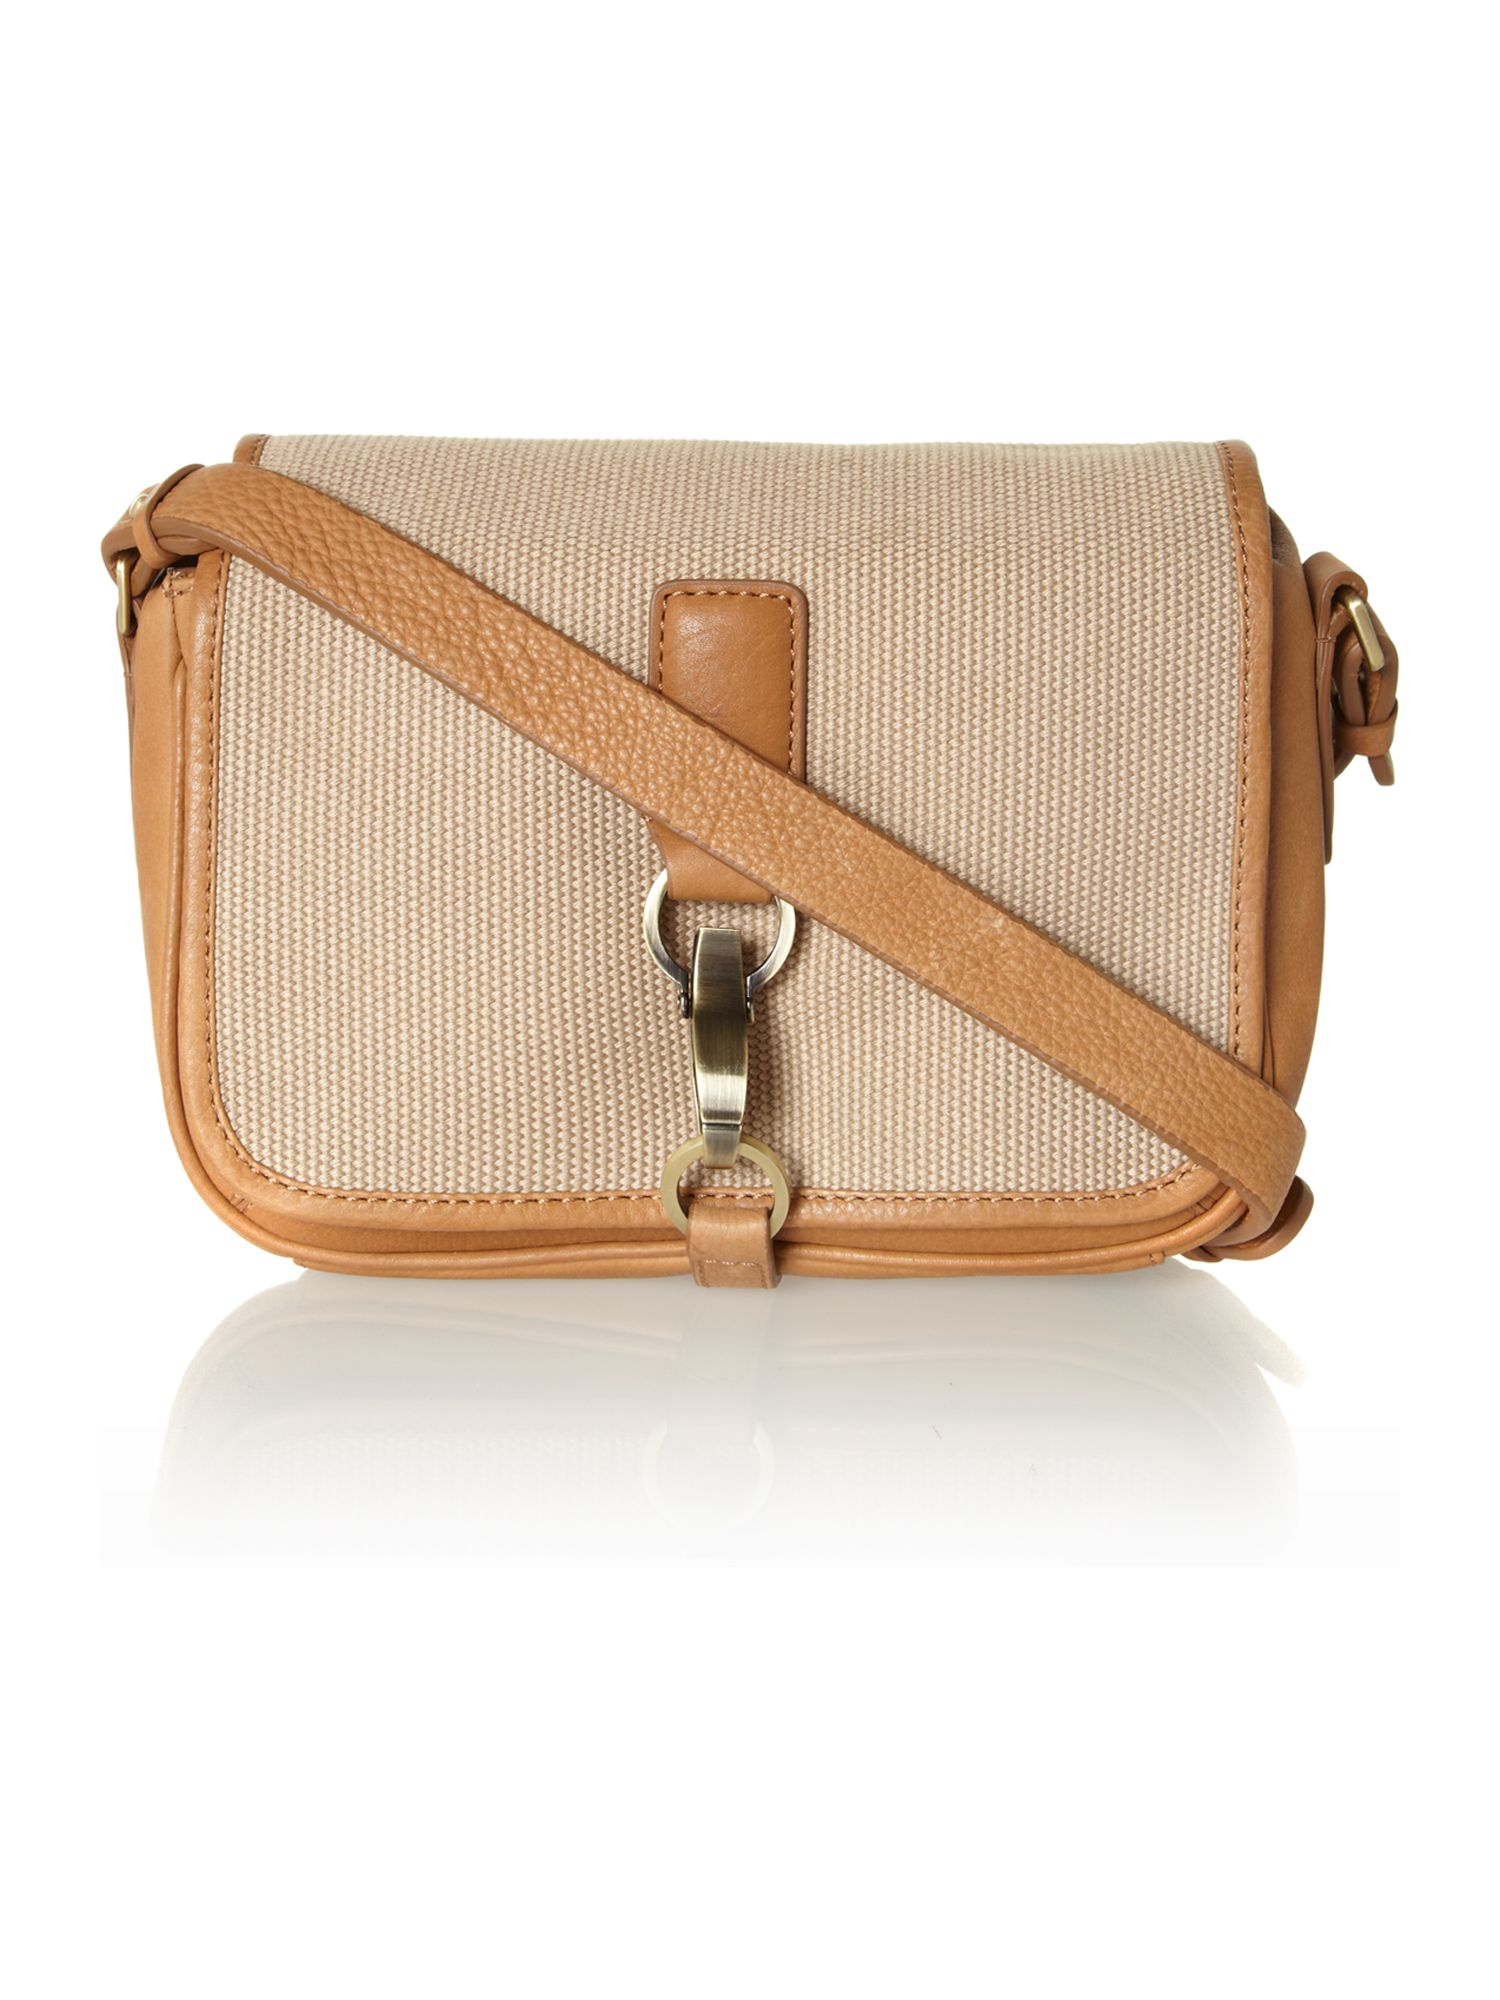 Laura bailey medium cross body flap over bag